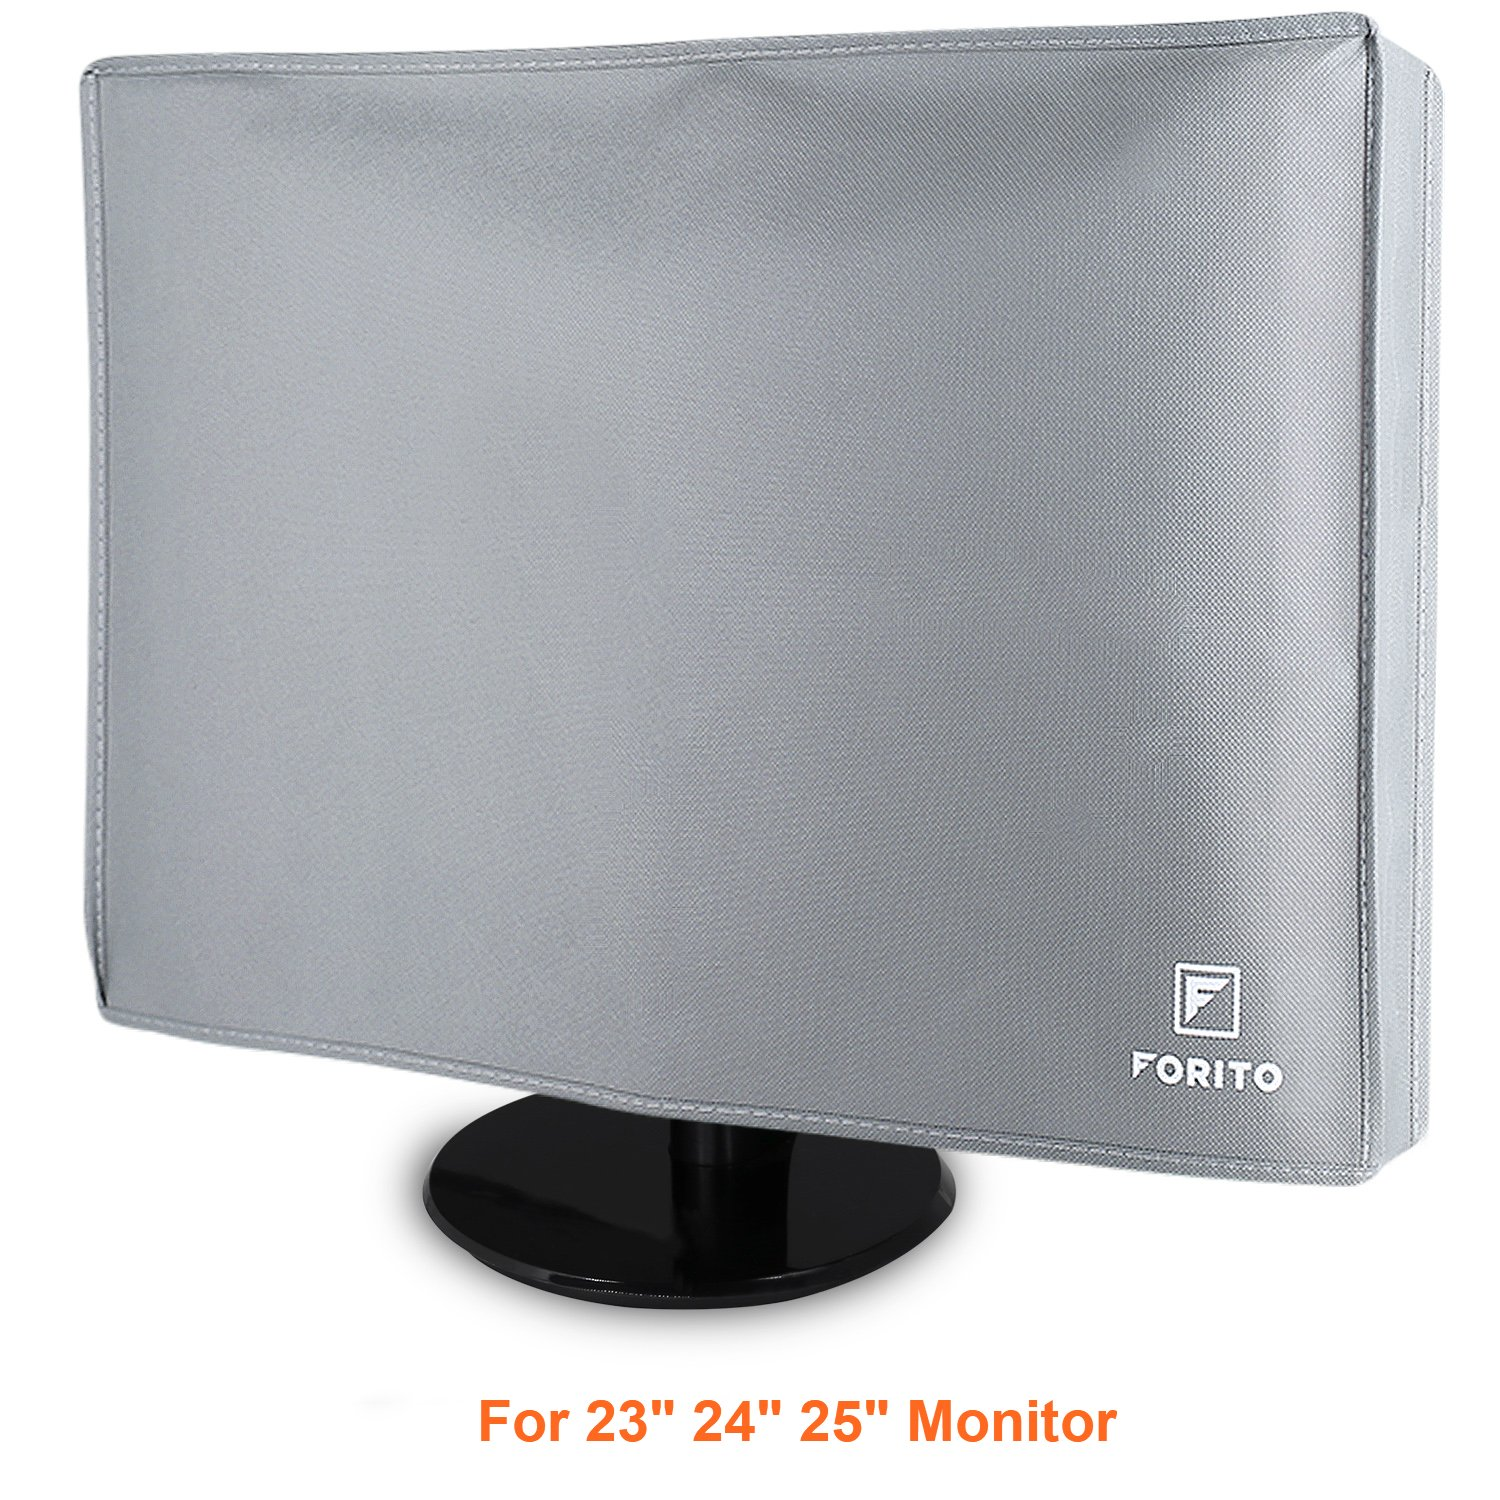 """FORITO Computer Dust Cover Antistatic Non-woven Computer Dust Cover for 23"""" 24"""" 25"""" LCD/LED Screen Panel - Gray"""